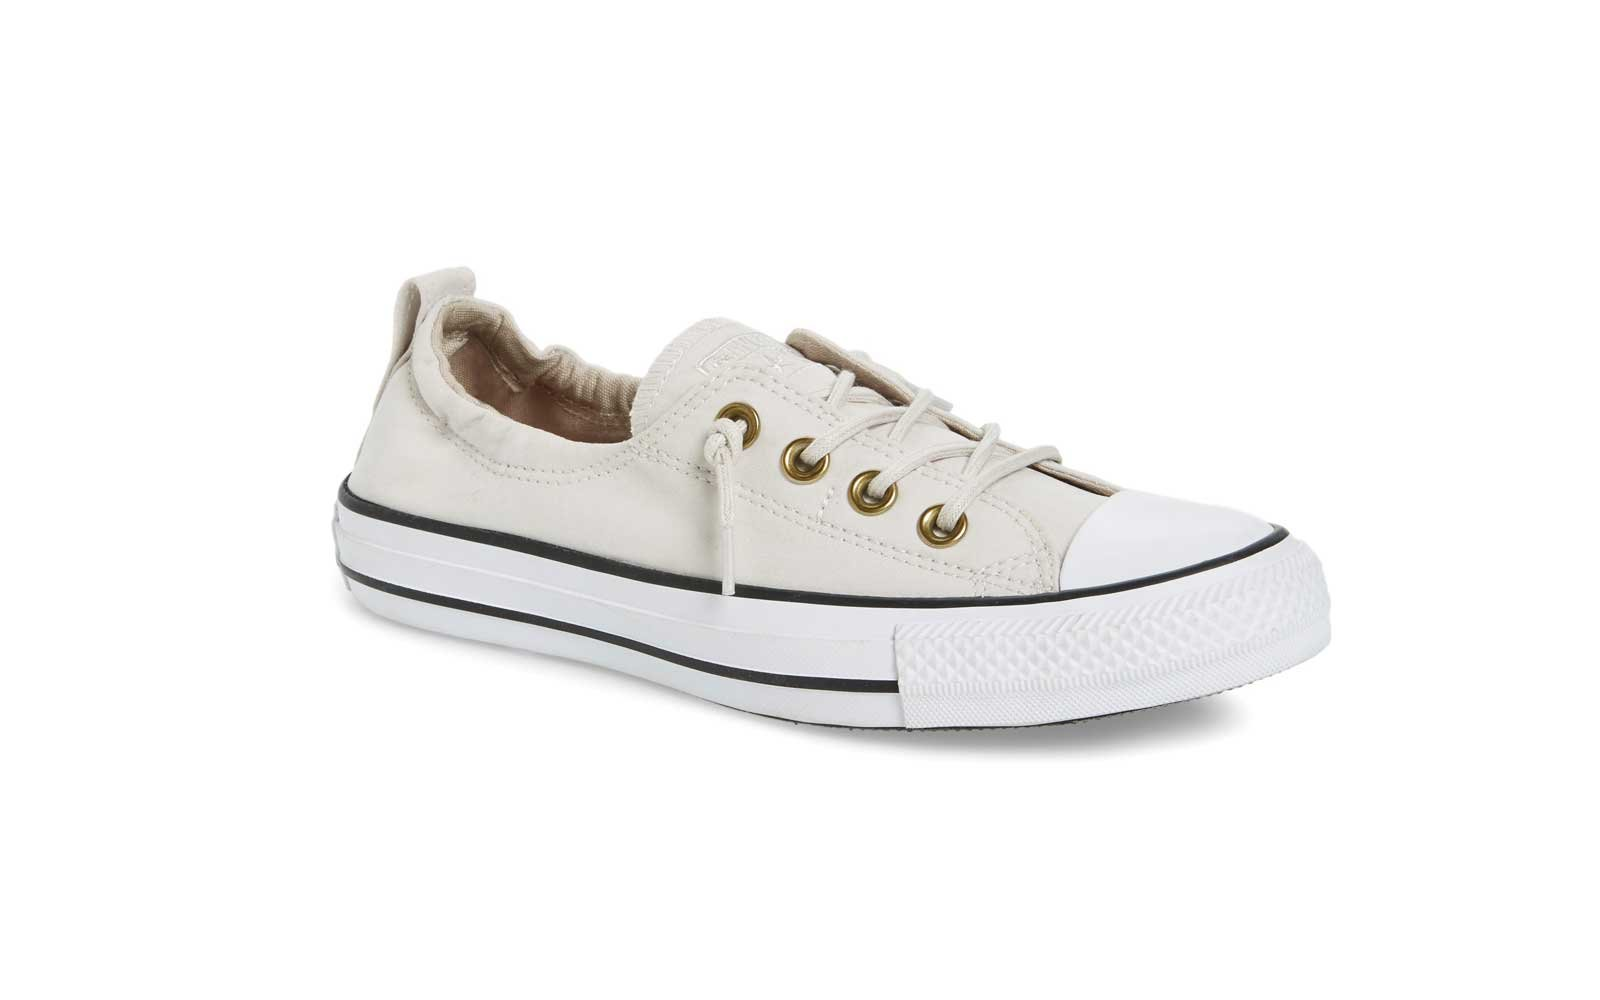 comfy travel sneakers